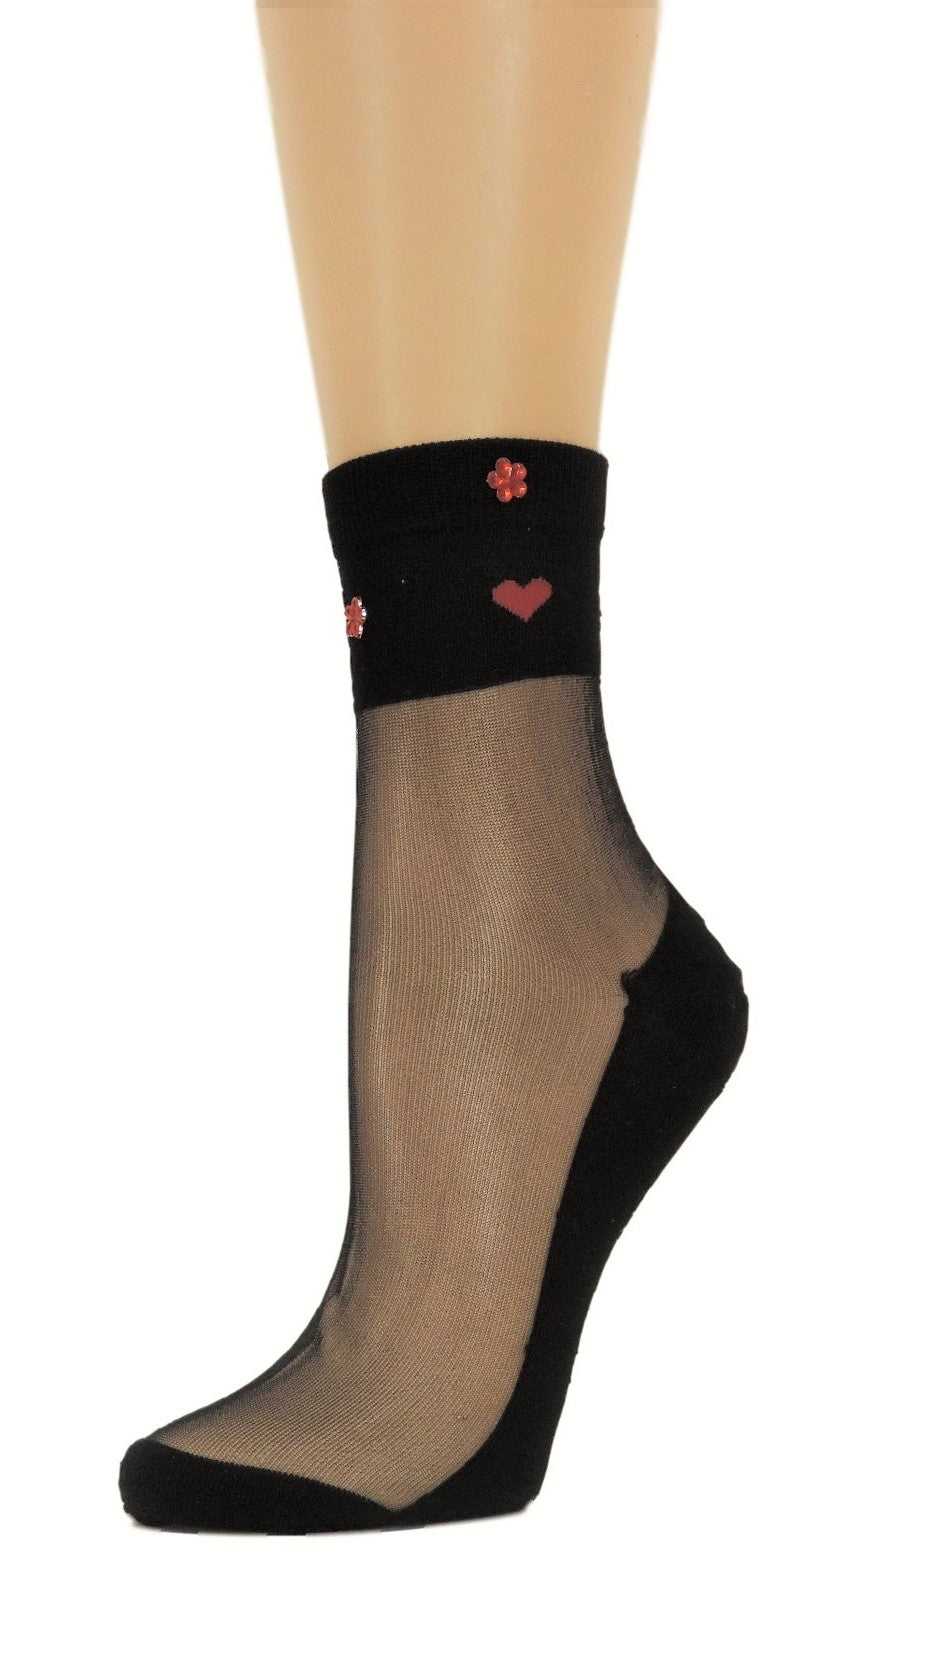 Young Heart Black Custom Sheer Socks with beads